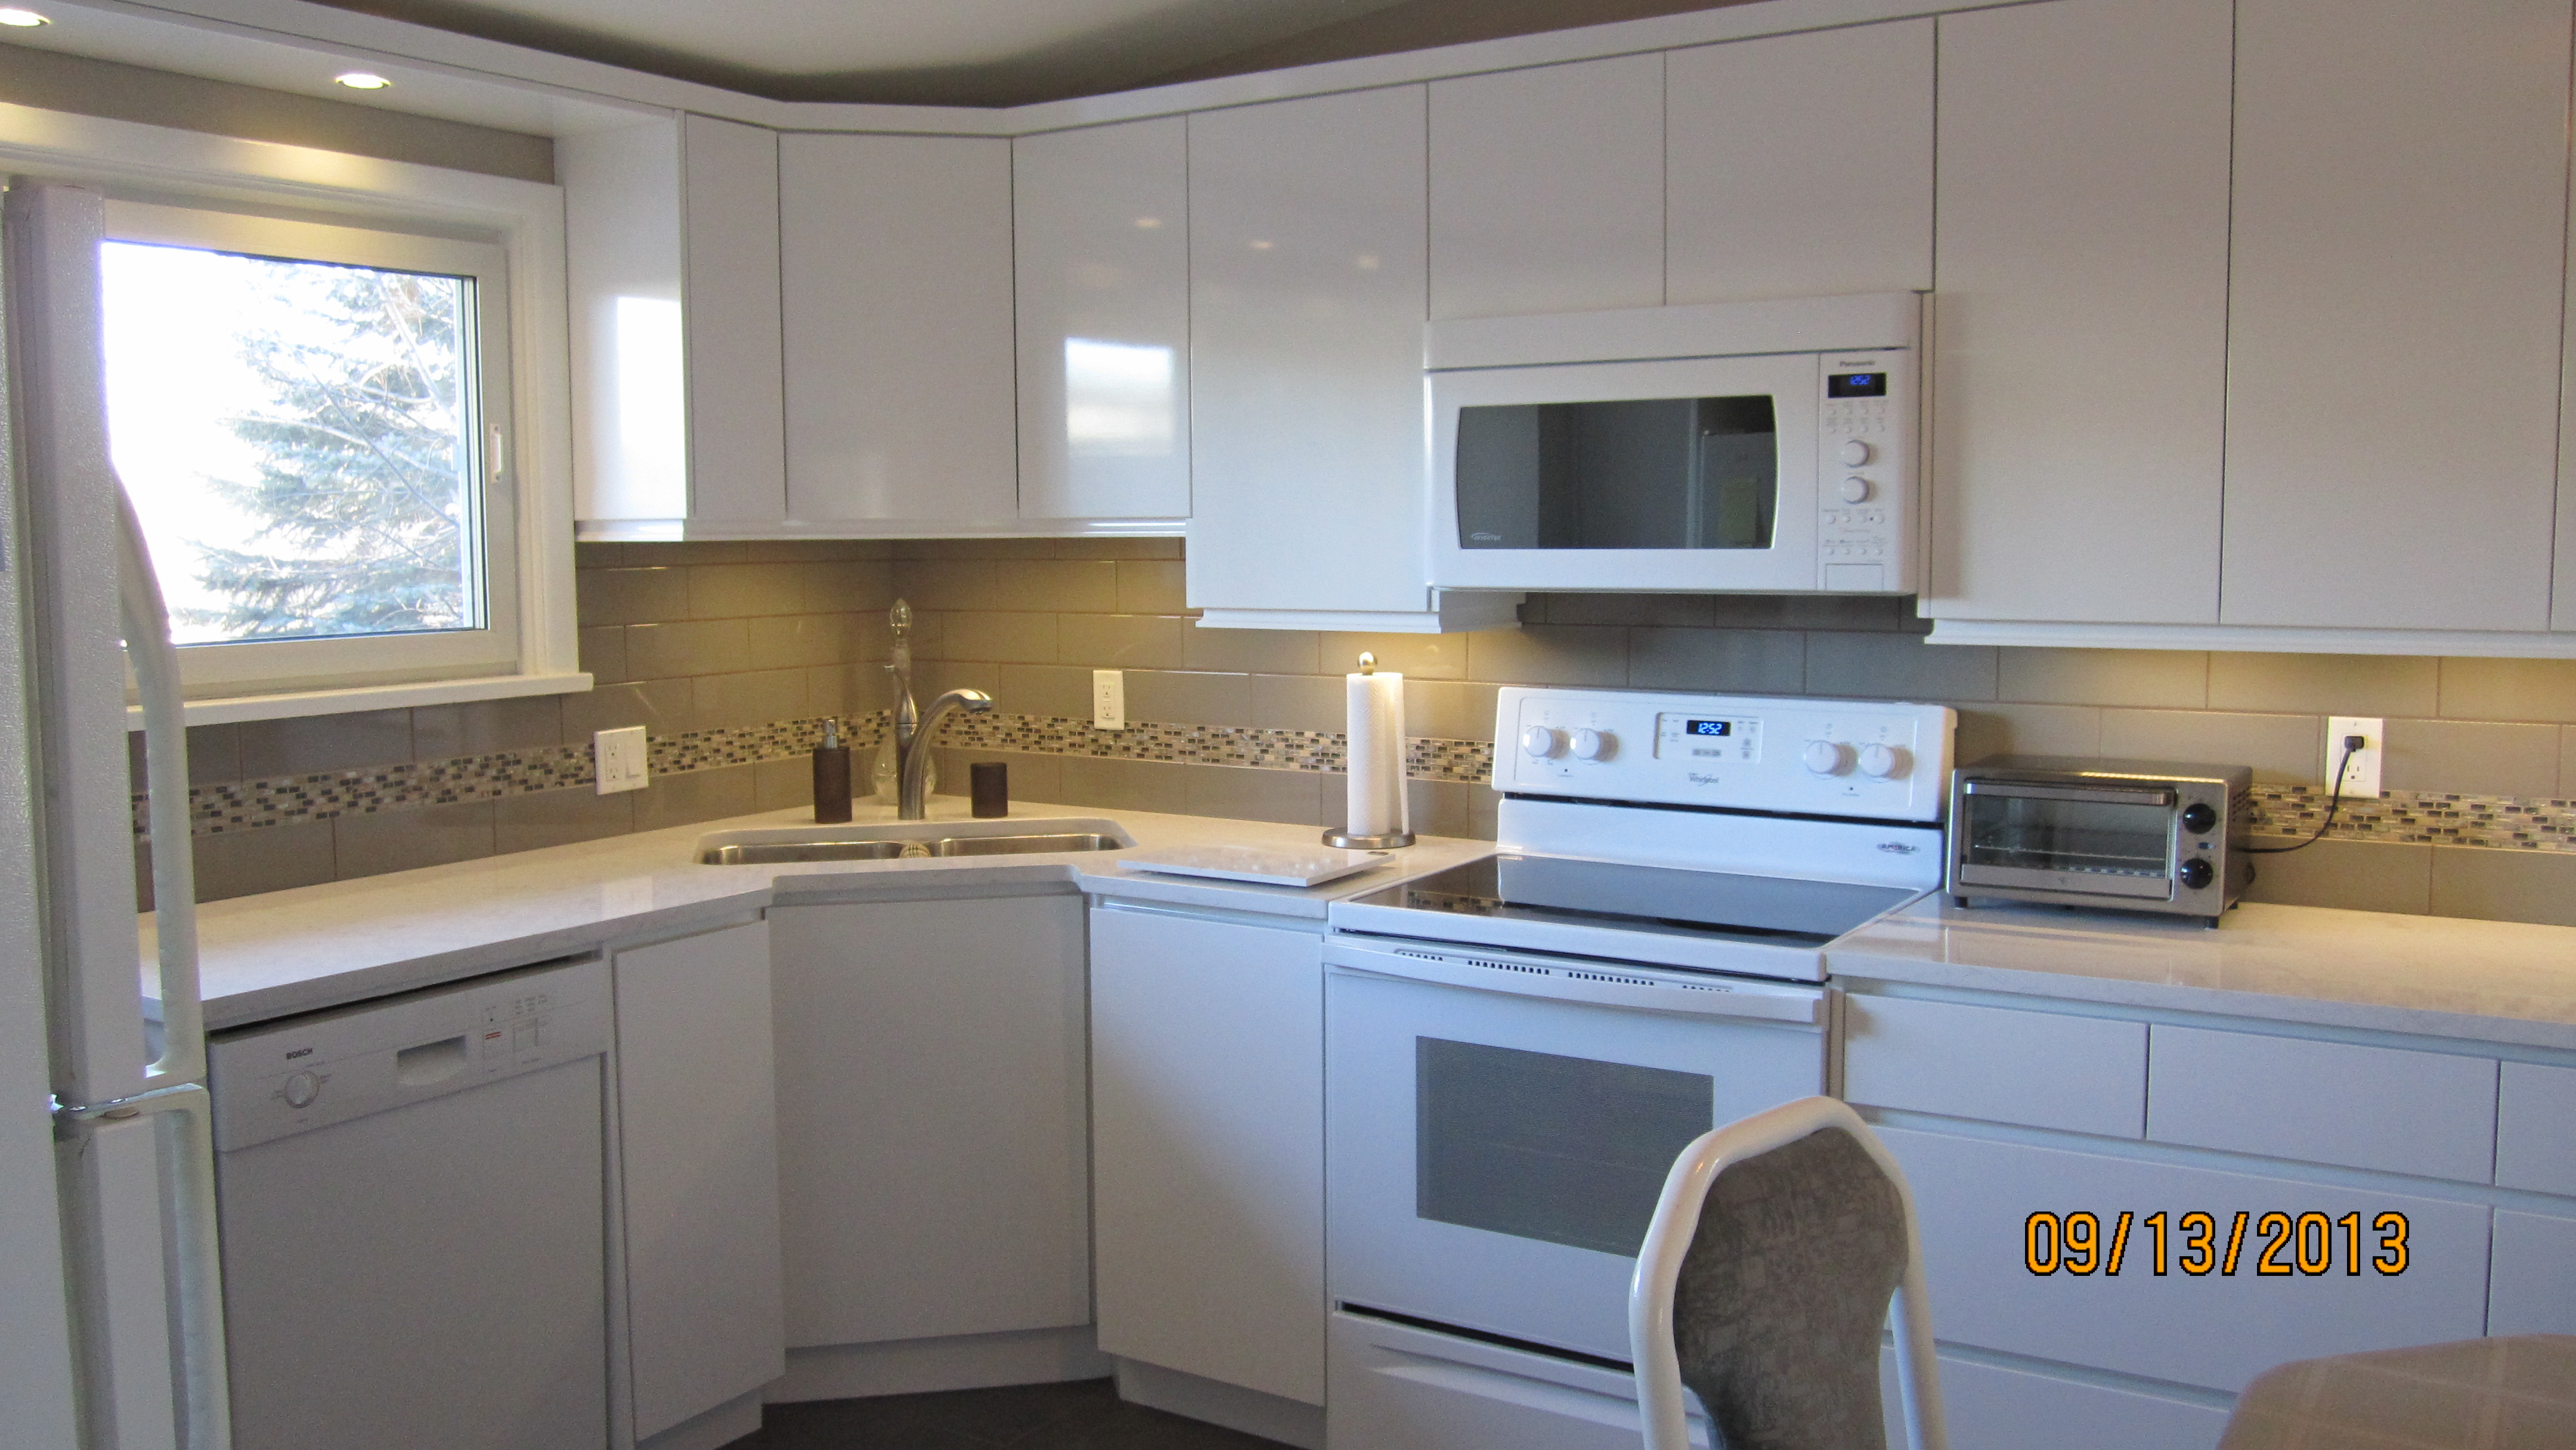 Sleek new kitchen in st boniface inclusivedesigngroup com